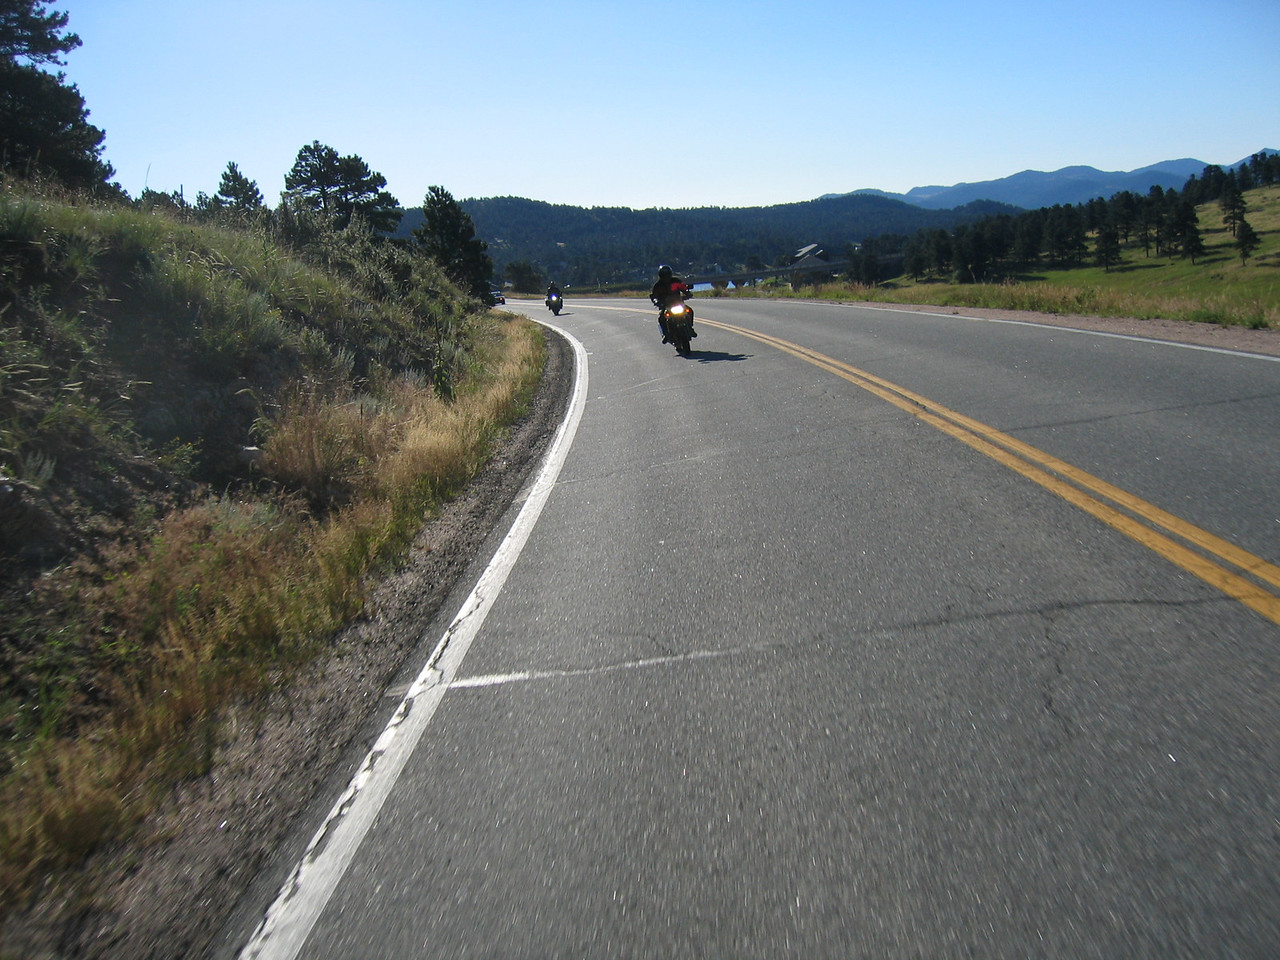 Riders follow us on our way to the first pass: Squaw Pass.